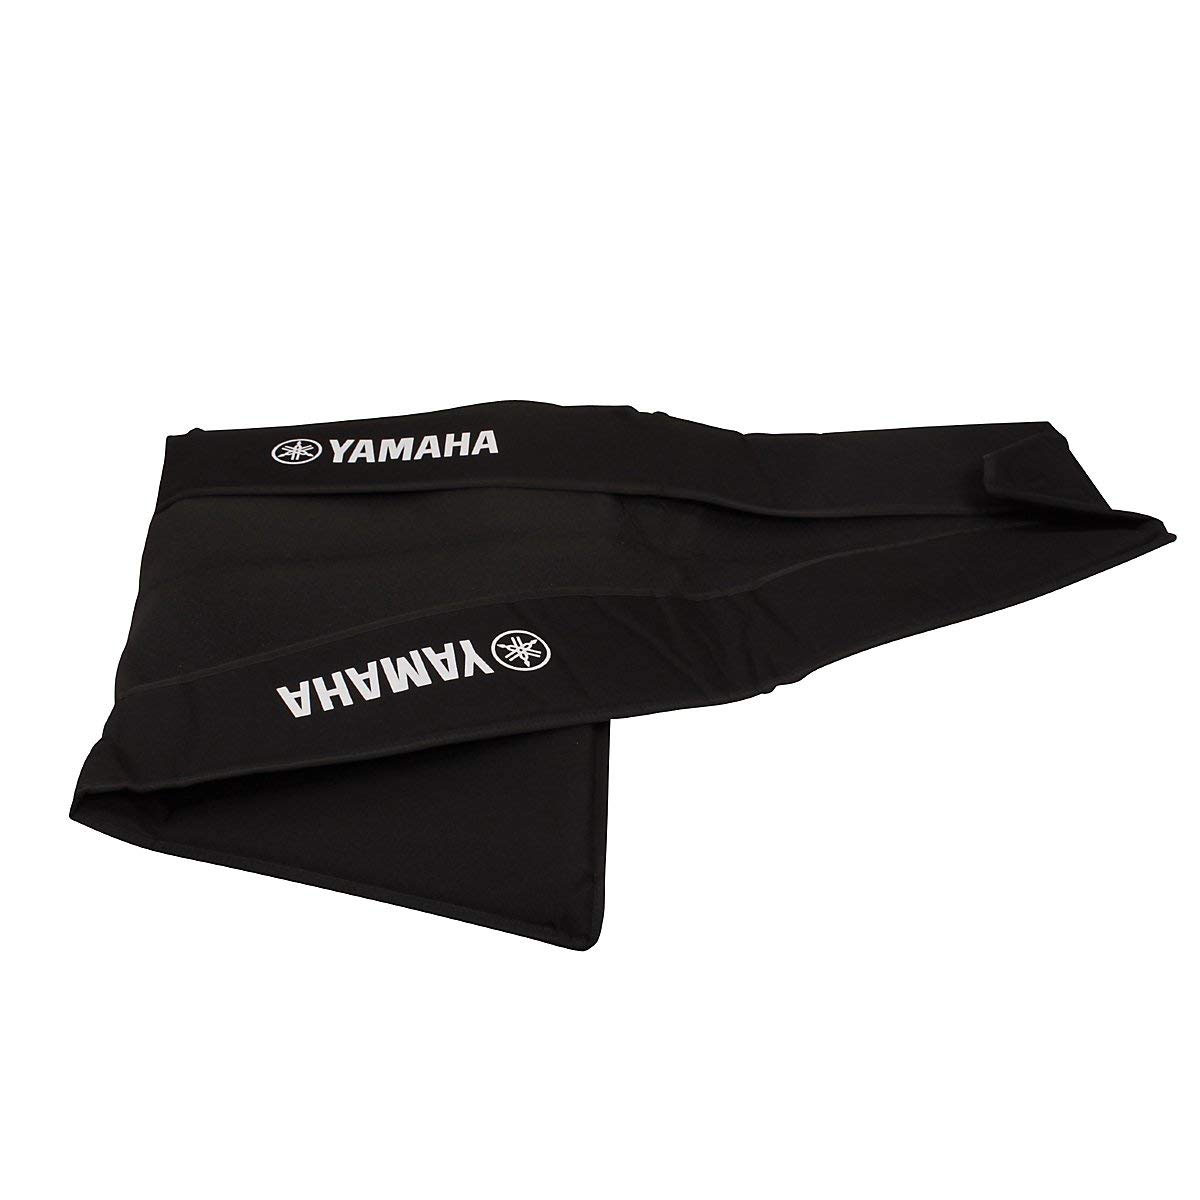 Yamaha Drop Cover for YX-500 Xylophone